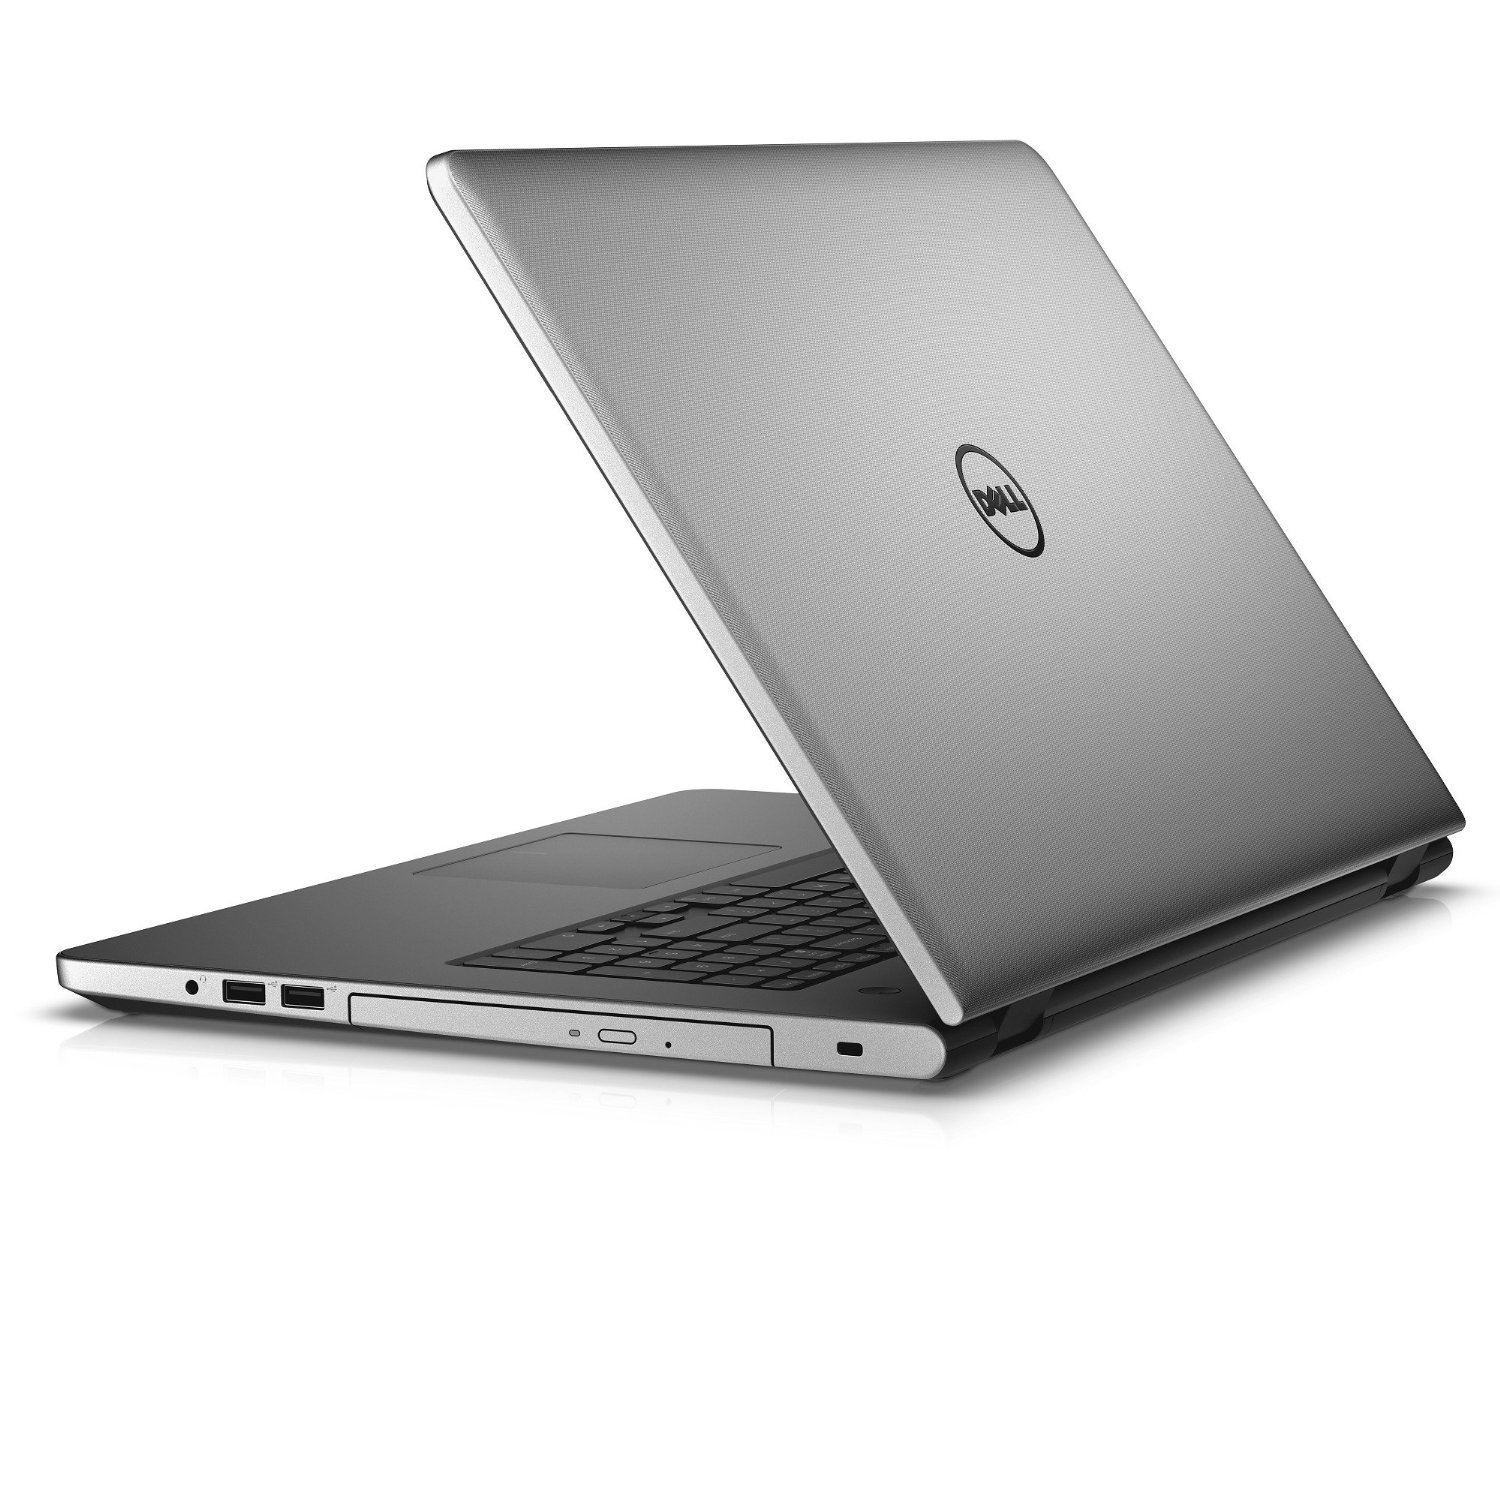 "2016 Dell Inspiron 17.3"" Laptop, 6th Gen Intel Skylake Core i7-6500U up to 3.1GHz, Full HD (1920x1080) Display, 8GB RAM, AMD Radeon R5 Graphics, 1TB HDD, DVD Drive, Windows 7/10 Professional"